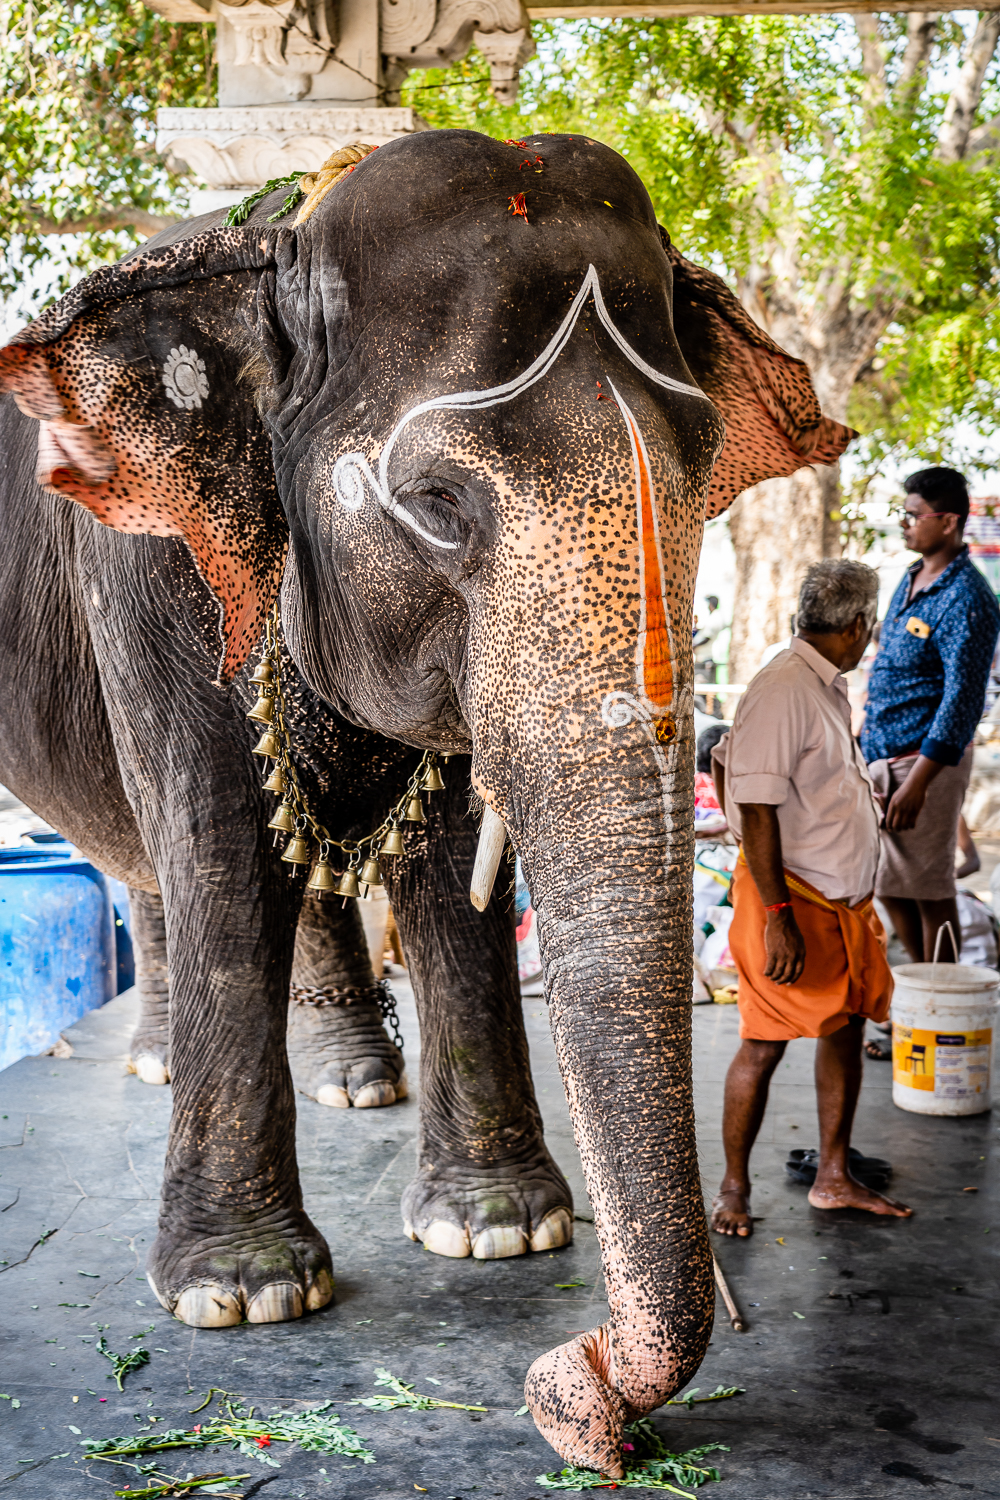 Travel India Amma Mandapam Ritual Center Temple Elephant